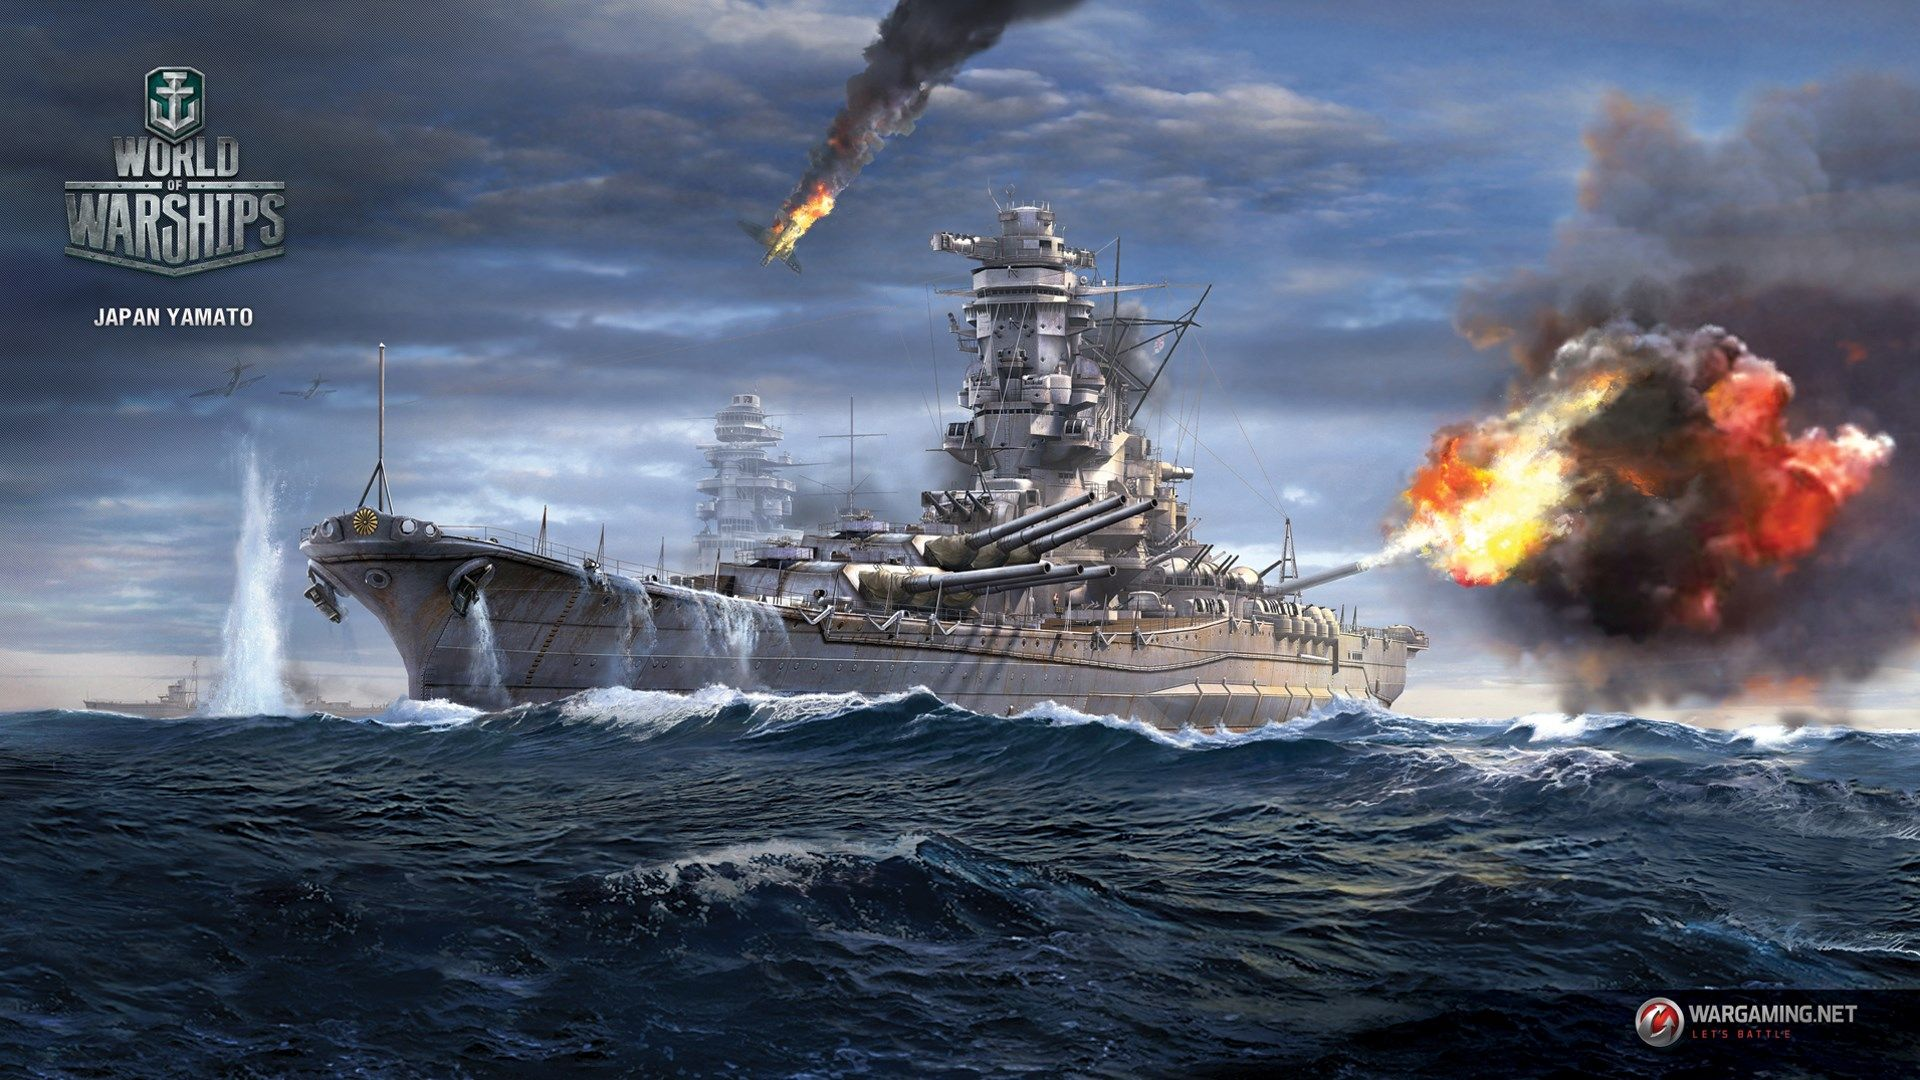 1920x1080 World of Warships game wallpaper World of